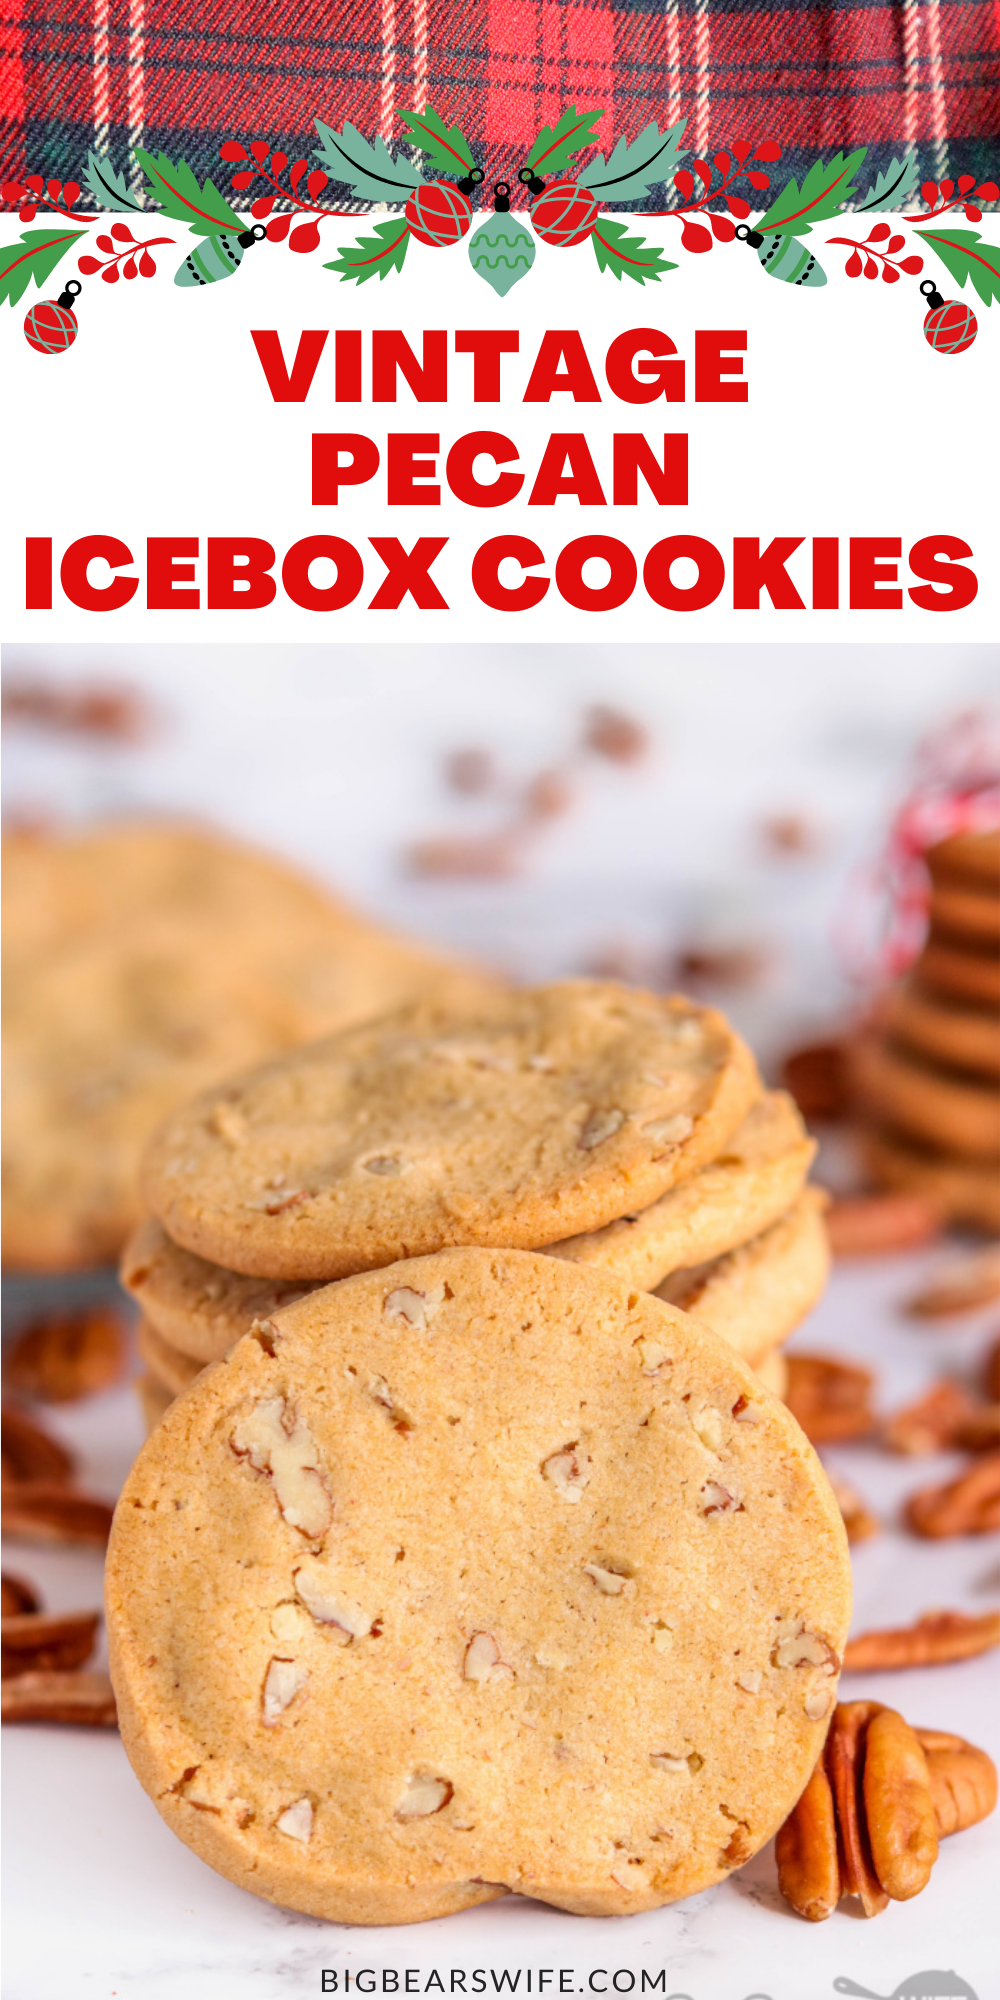 These Vintage Pecan Icebox Cookies are a tried and true classic recipe that first appeared in the Imperial Sugar 1930 edition of A Bag Full of Recipes cookbook. Make the dough, and let it chill overnight before slicing and bakingthisclassic cookie that has stood the test of time. via @bigbearswife